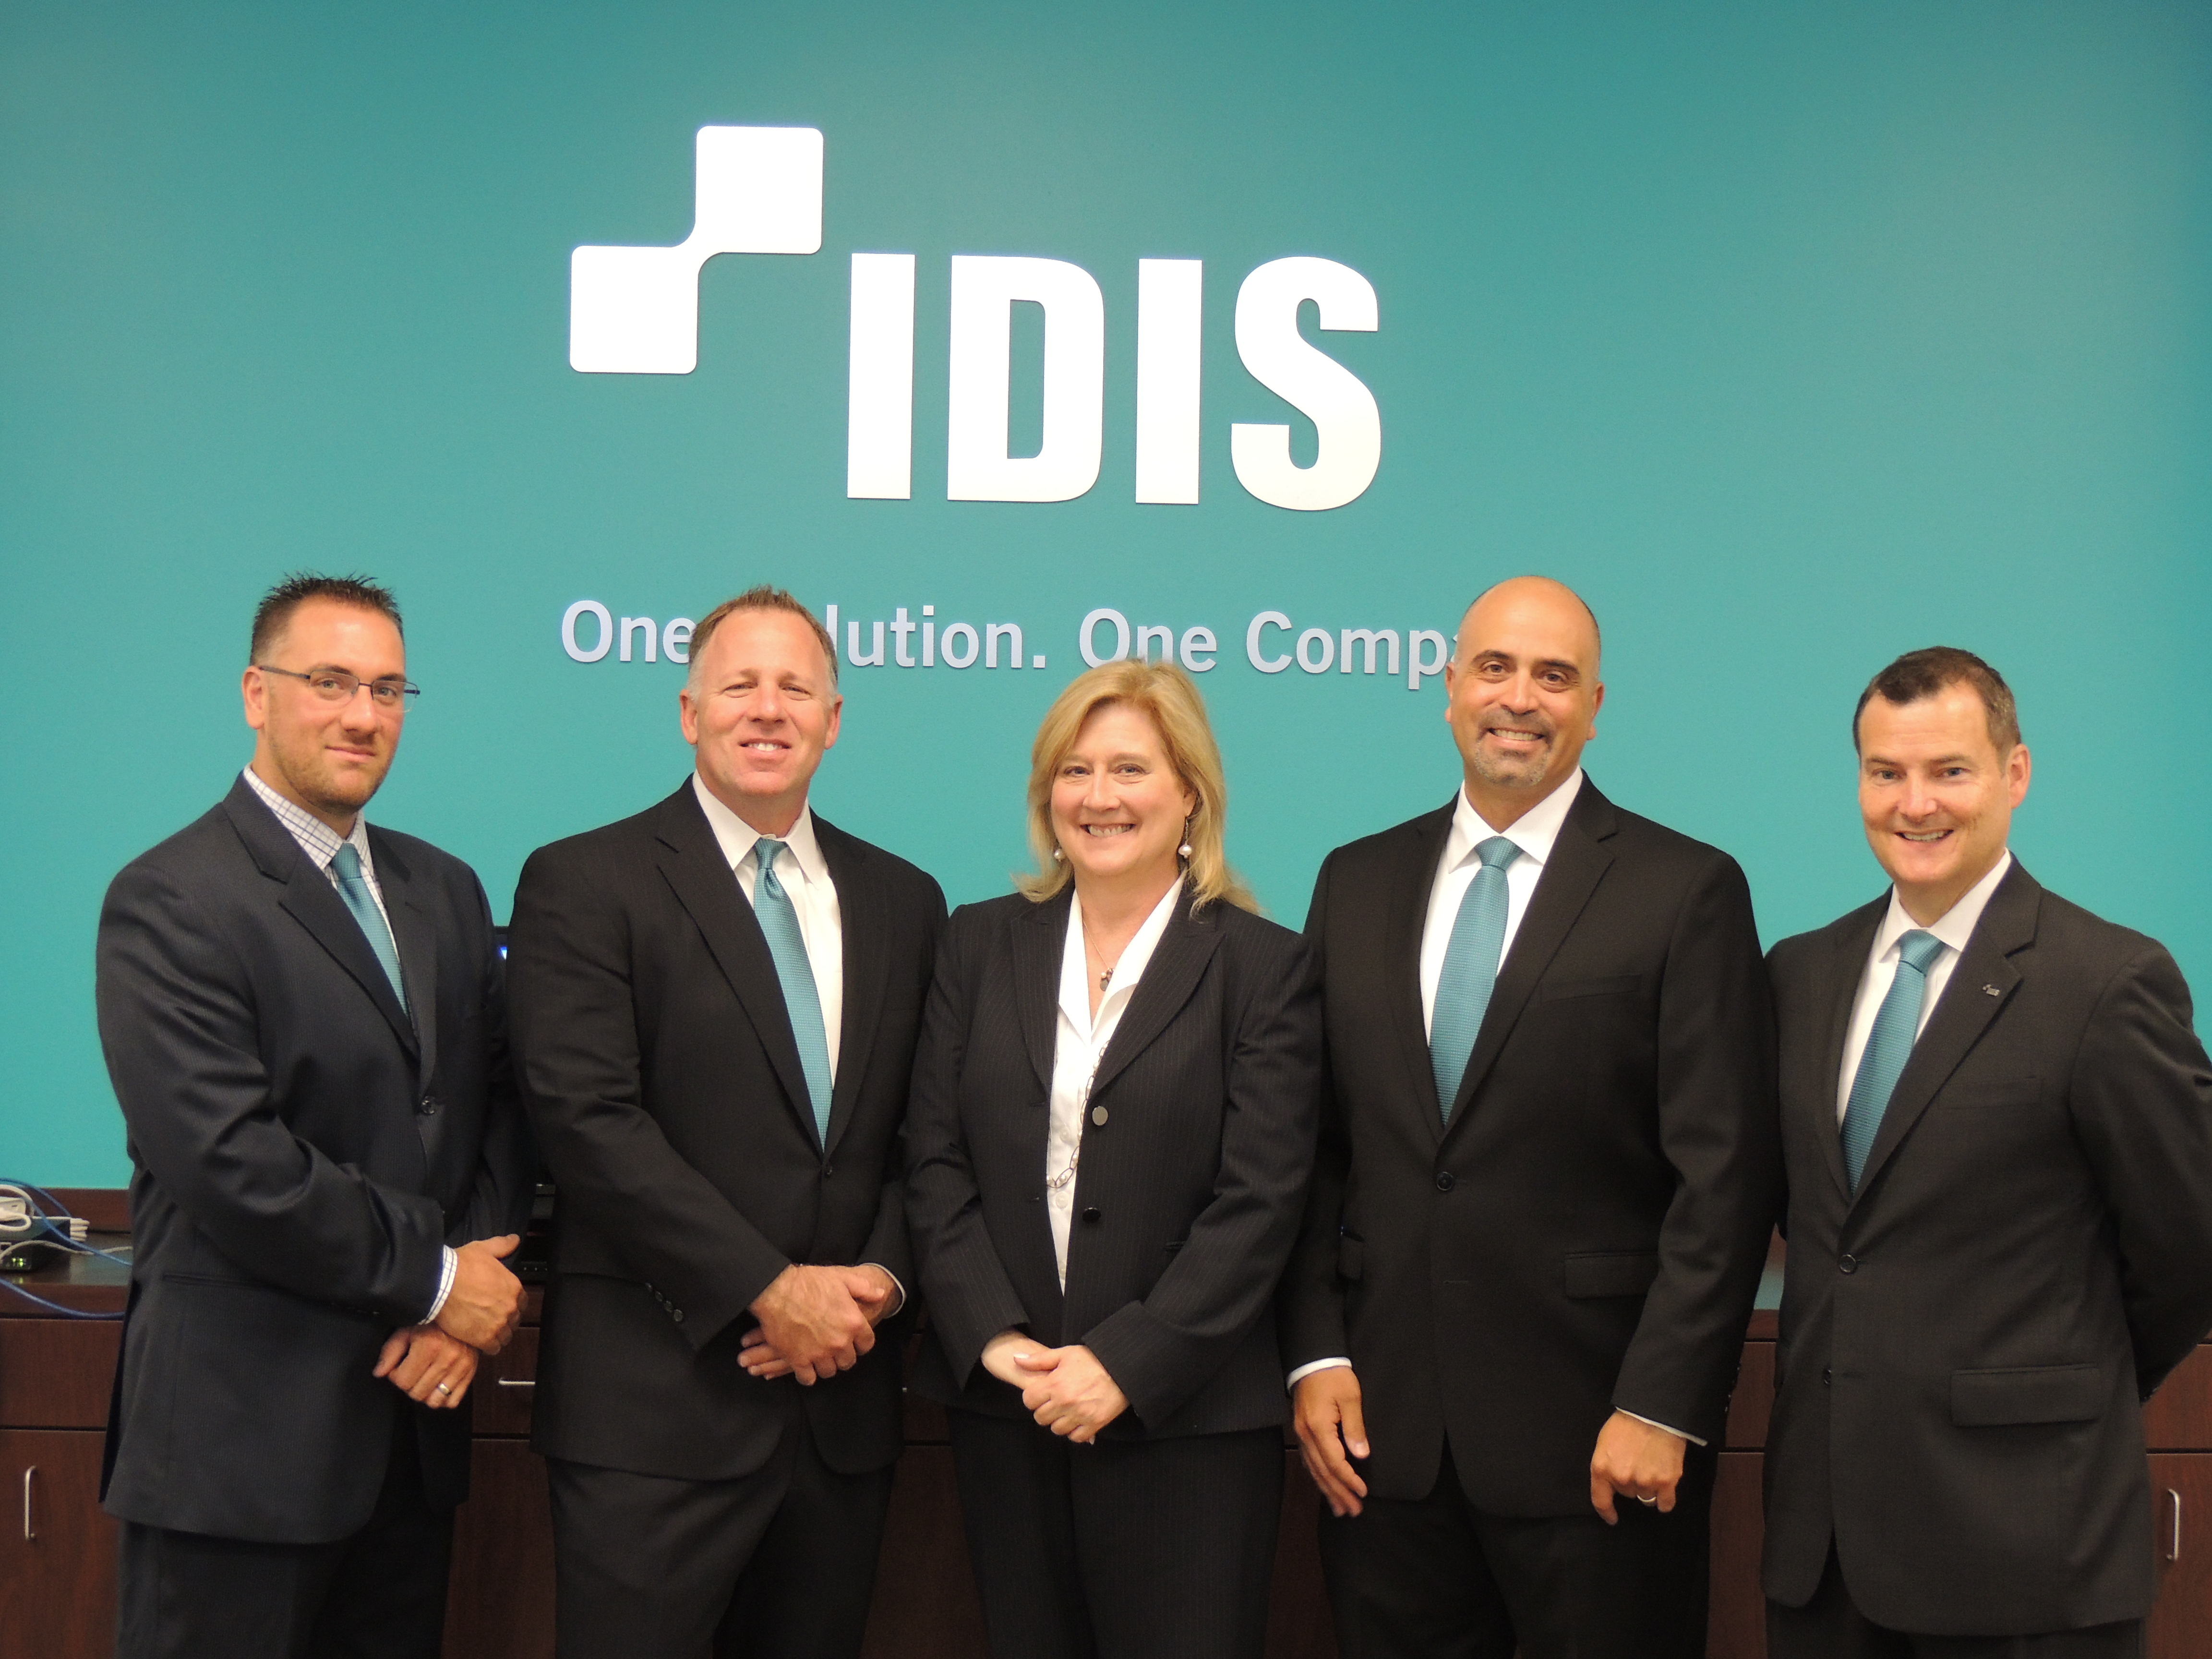 IDIS Introduces Expanded American Sales Team as Newly Launched ...